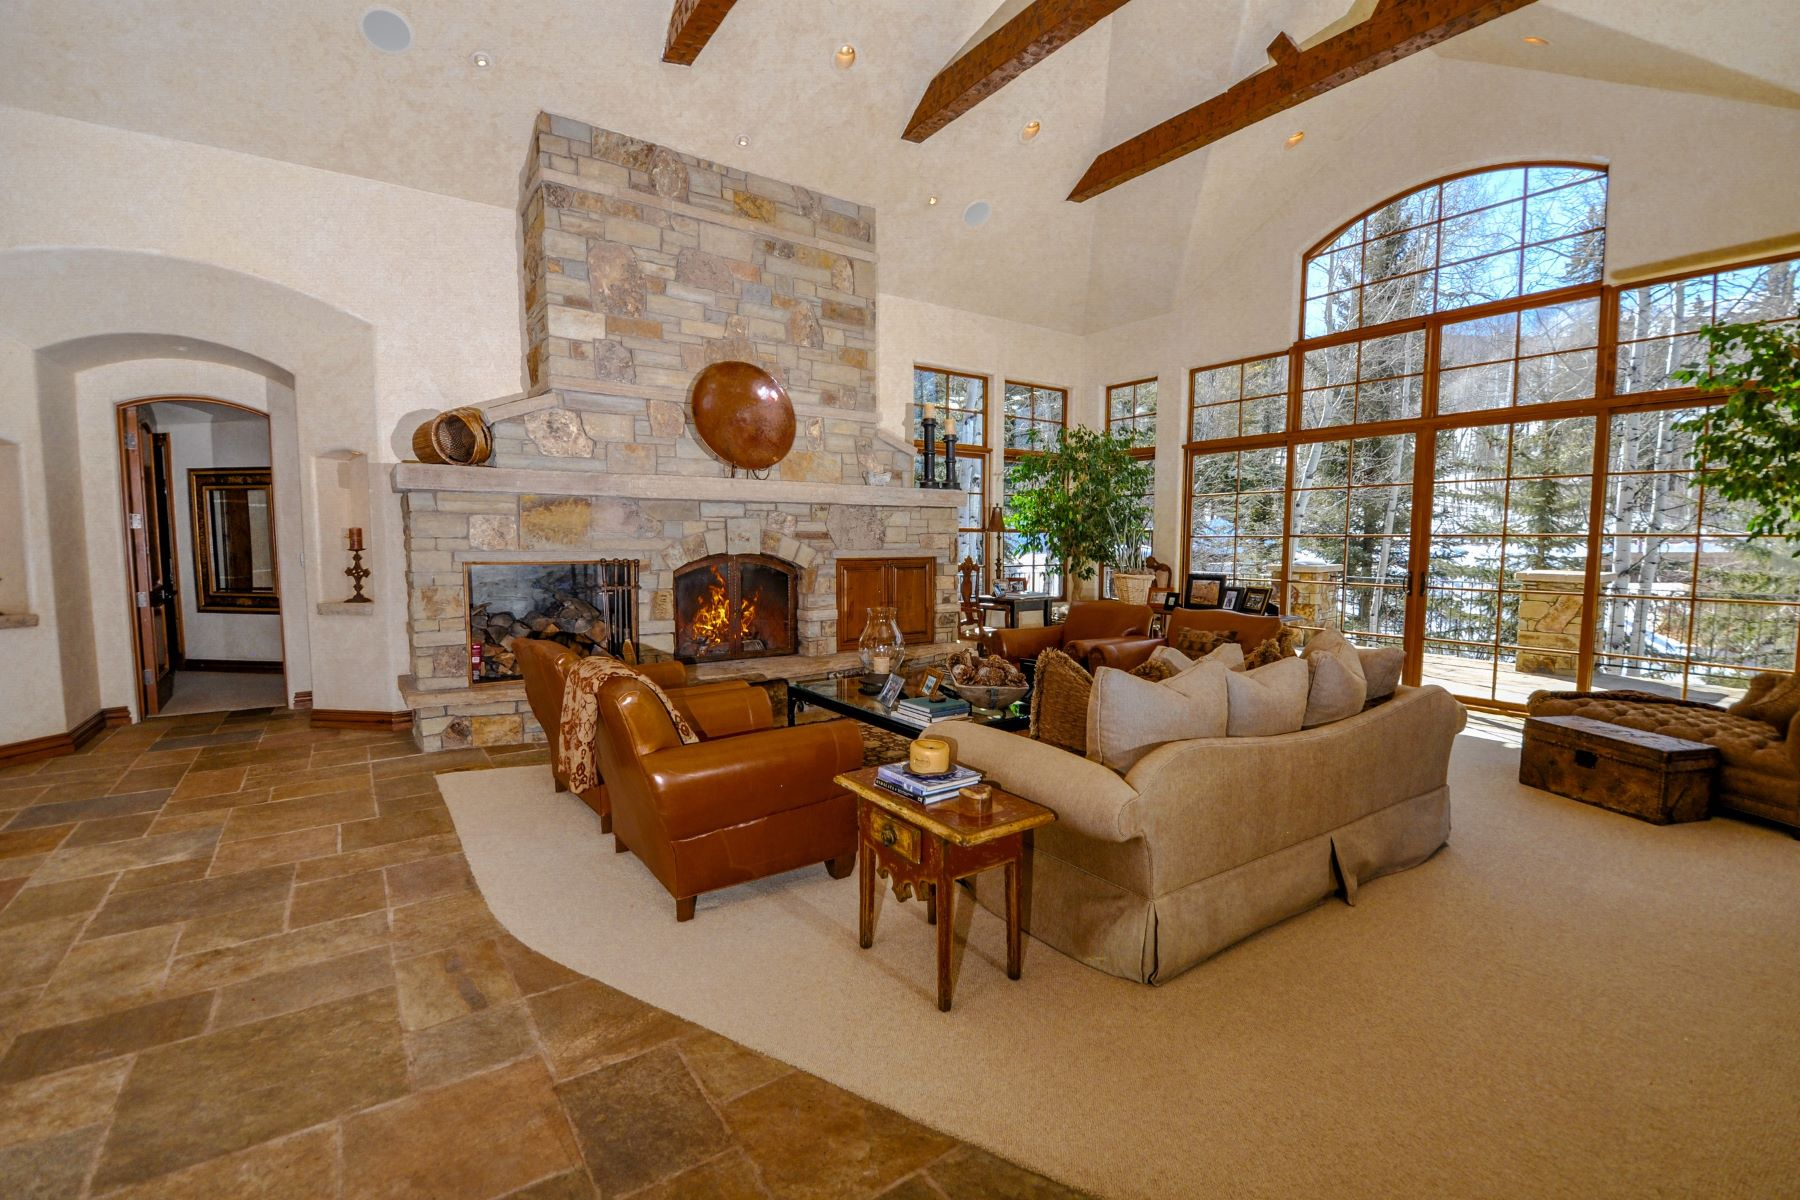 Property для того Продажа на Ski Access With Views 211 S Pine Crest Drive, Snowmass Village, Колорадо 81615 Соединенные Штаты